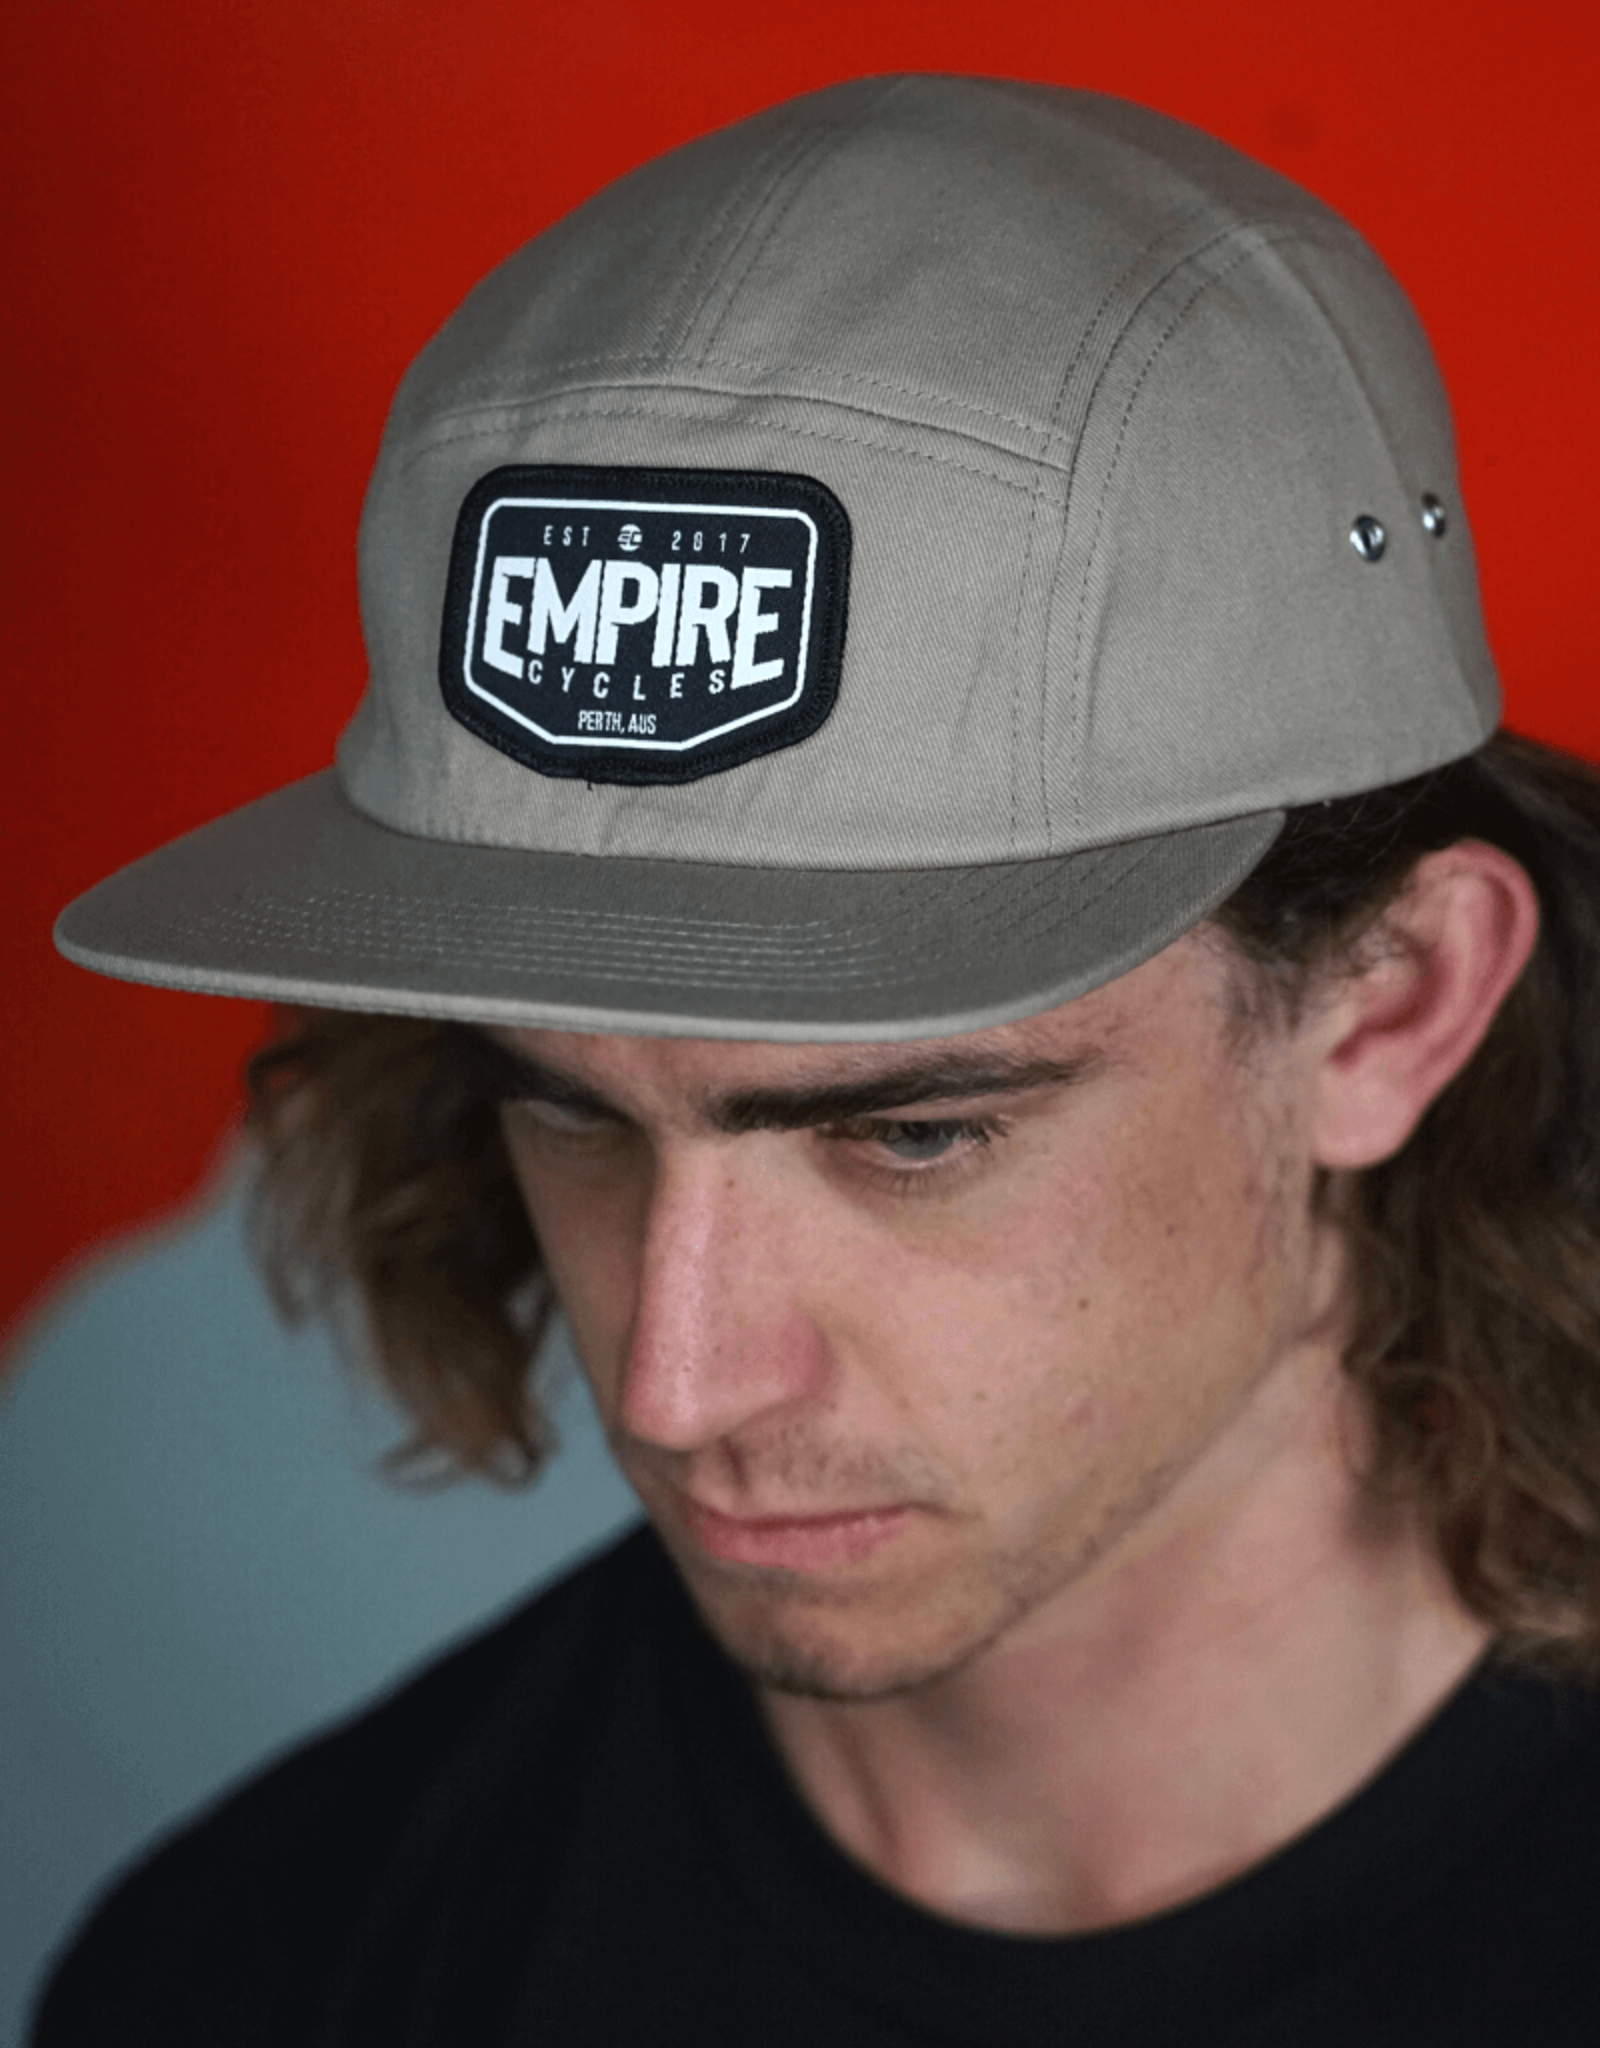 Empire Cycles Empire Plate 5 Panel Hat